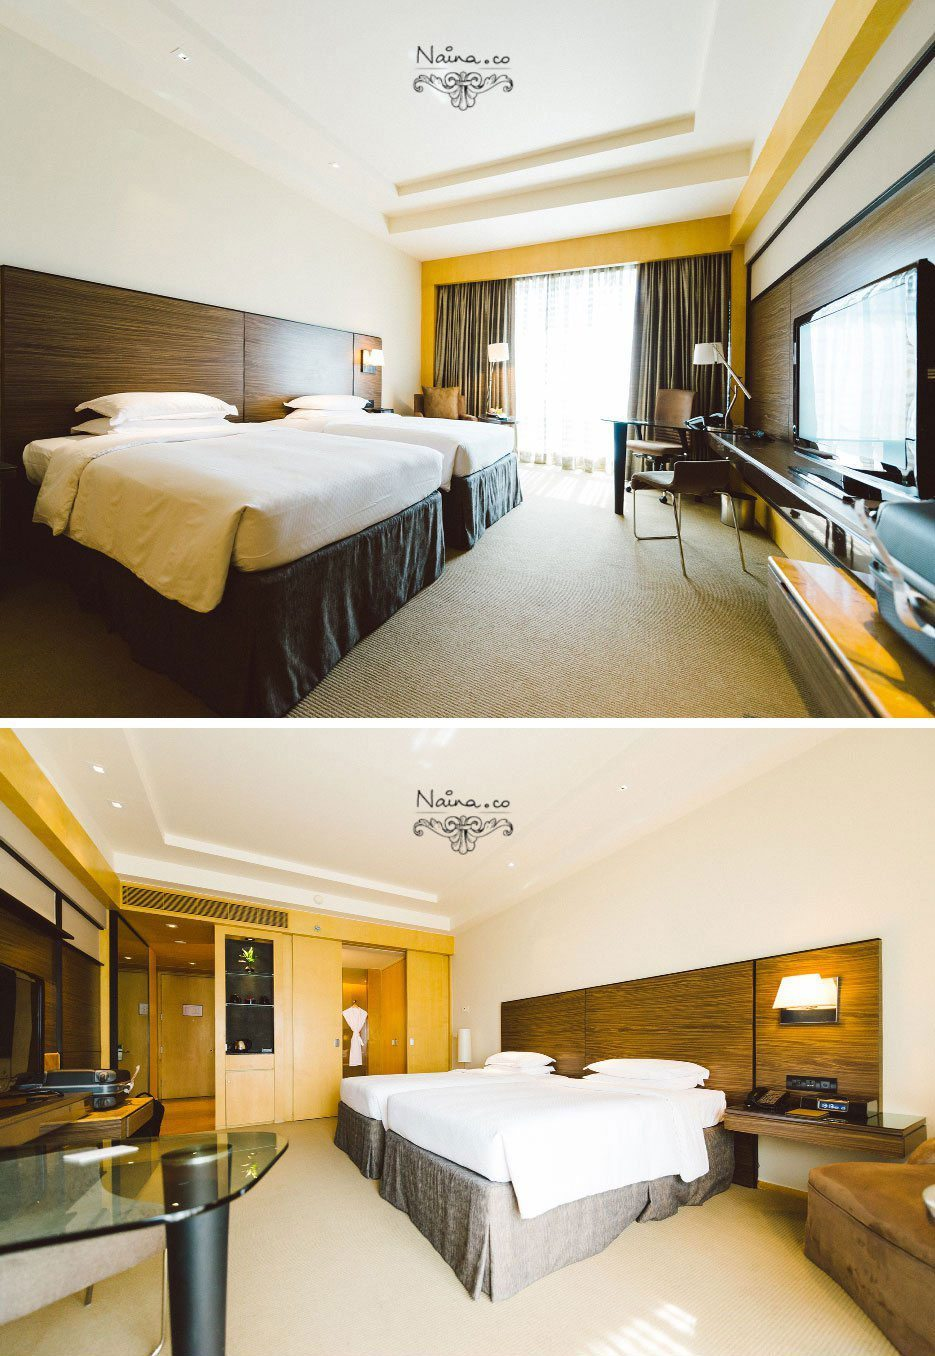 Grand-Hyatt-Bombay-Room-Hotel-Chivas-Studio-Lifestyle-Photographer-Naina-01